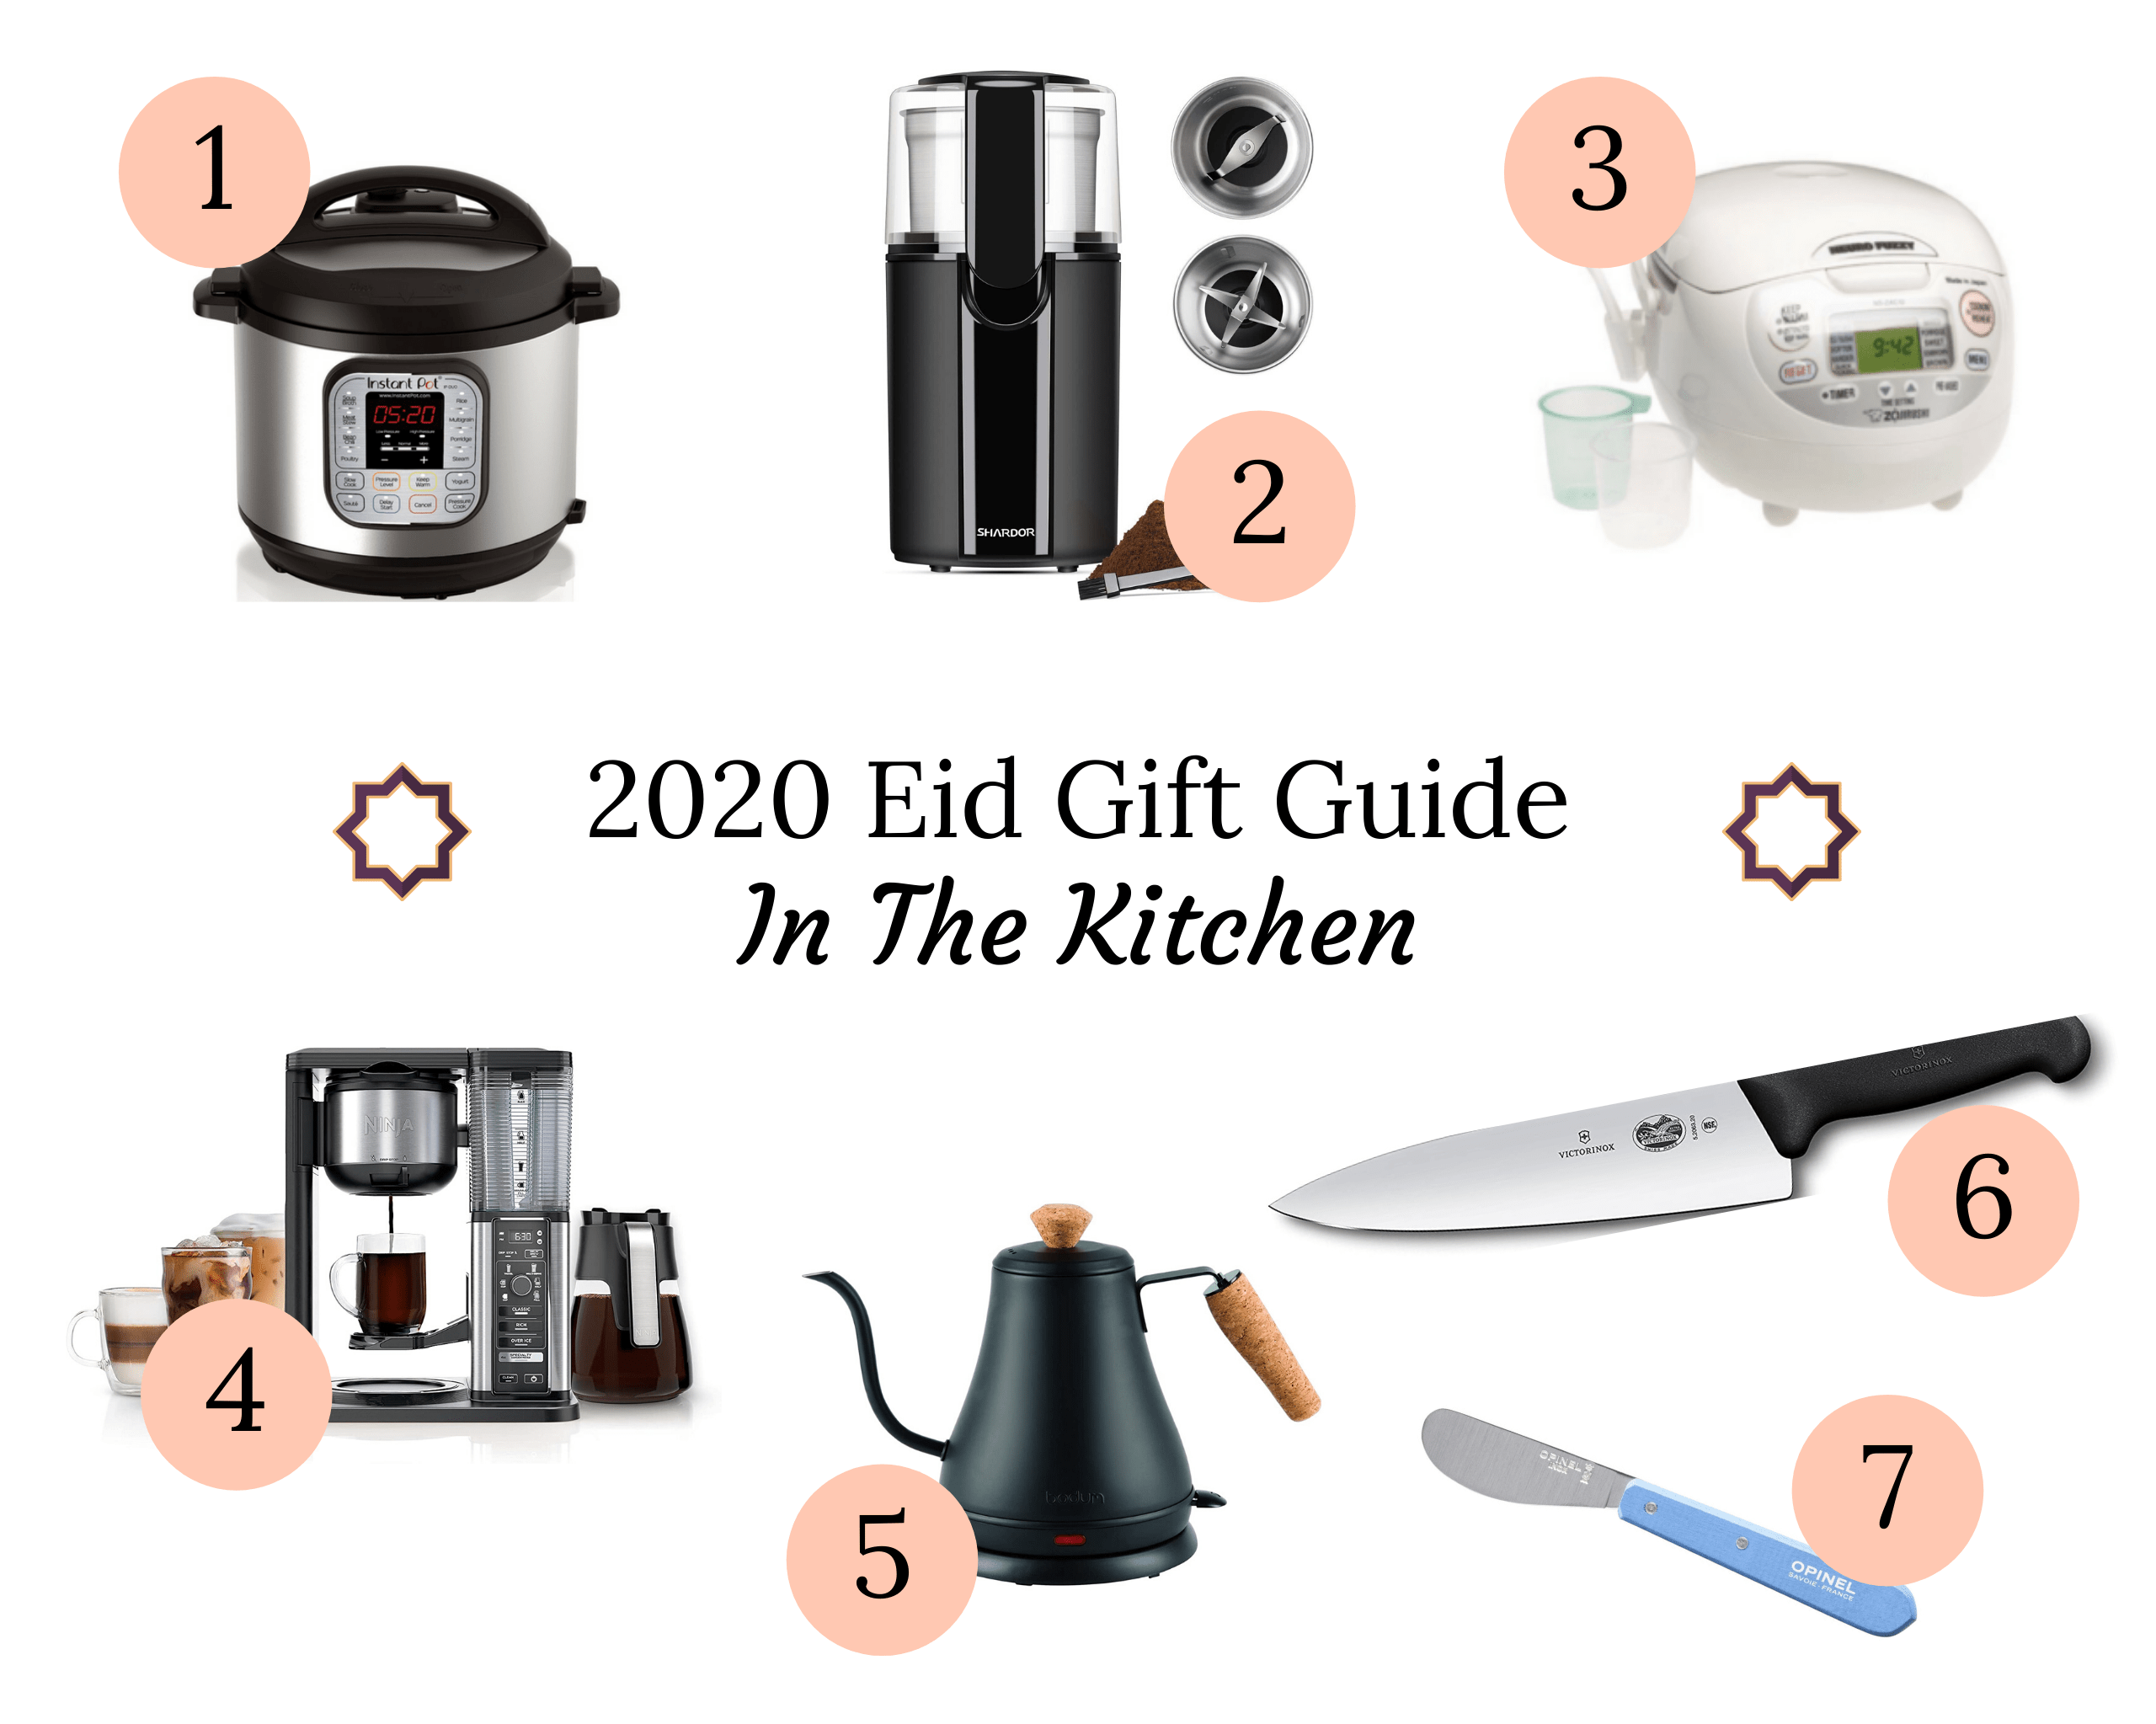 Eid Gift Guide Ideas for the Kitchen in a collage